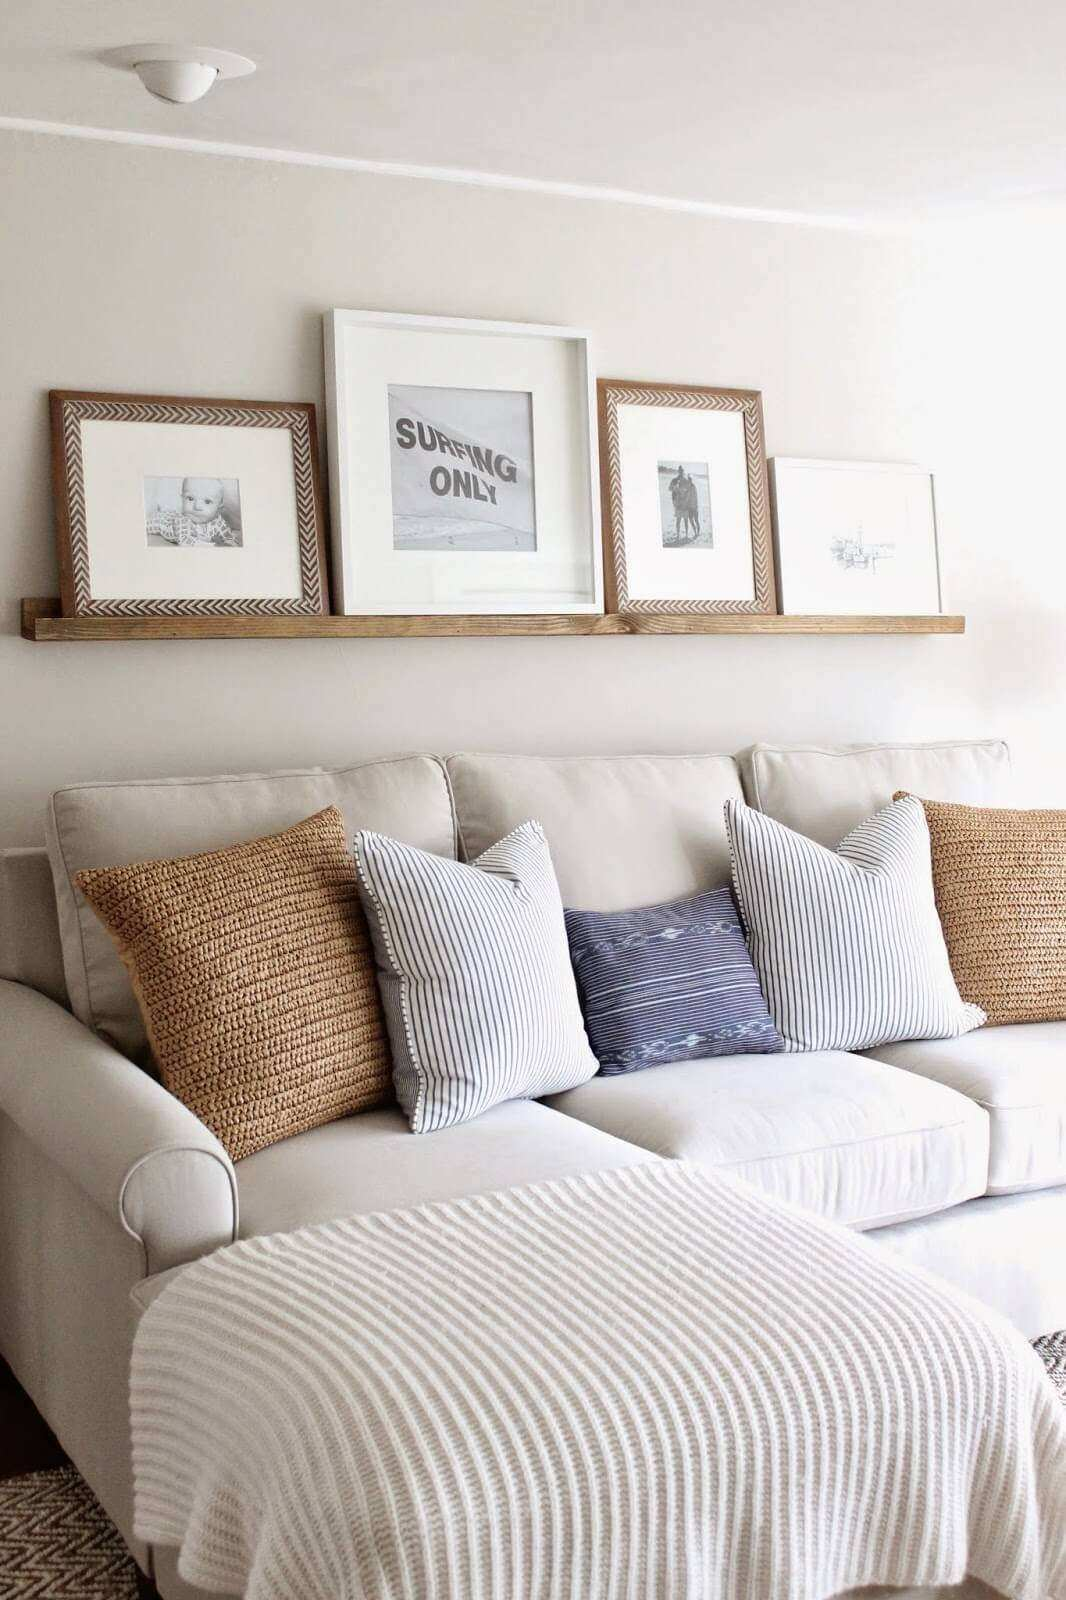 20 Lovely Decor Ideas for Adding Impact The Sofa